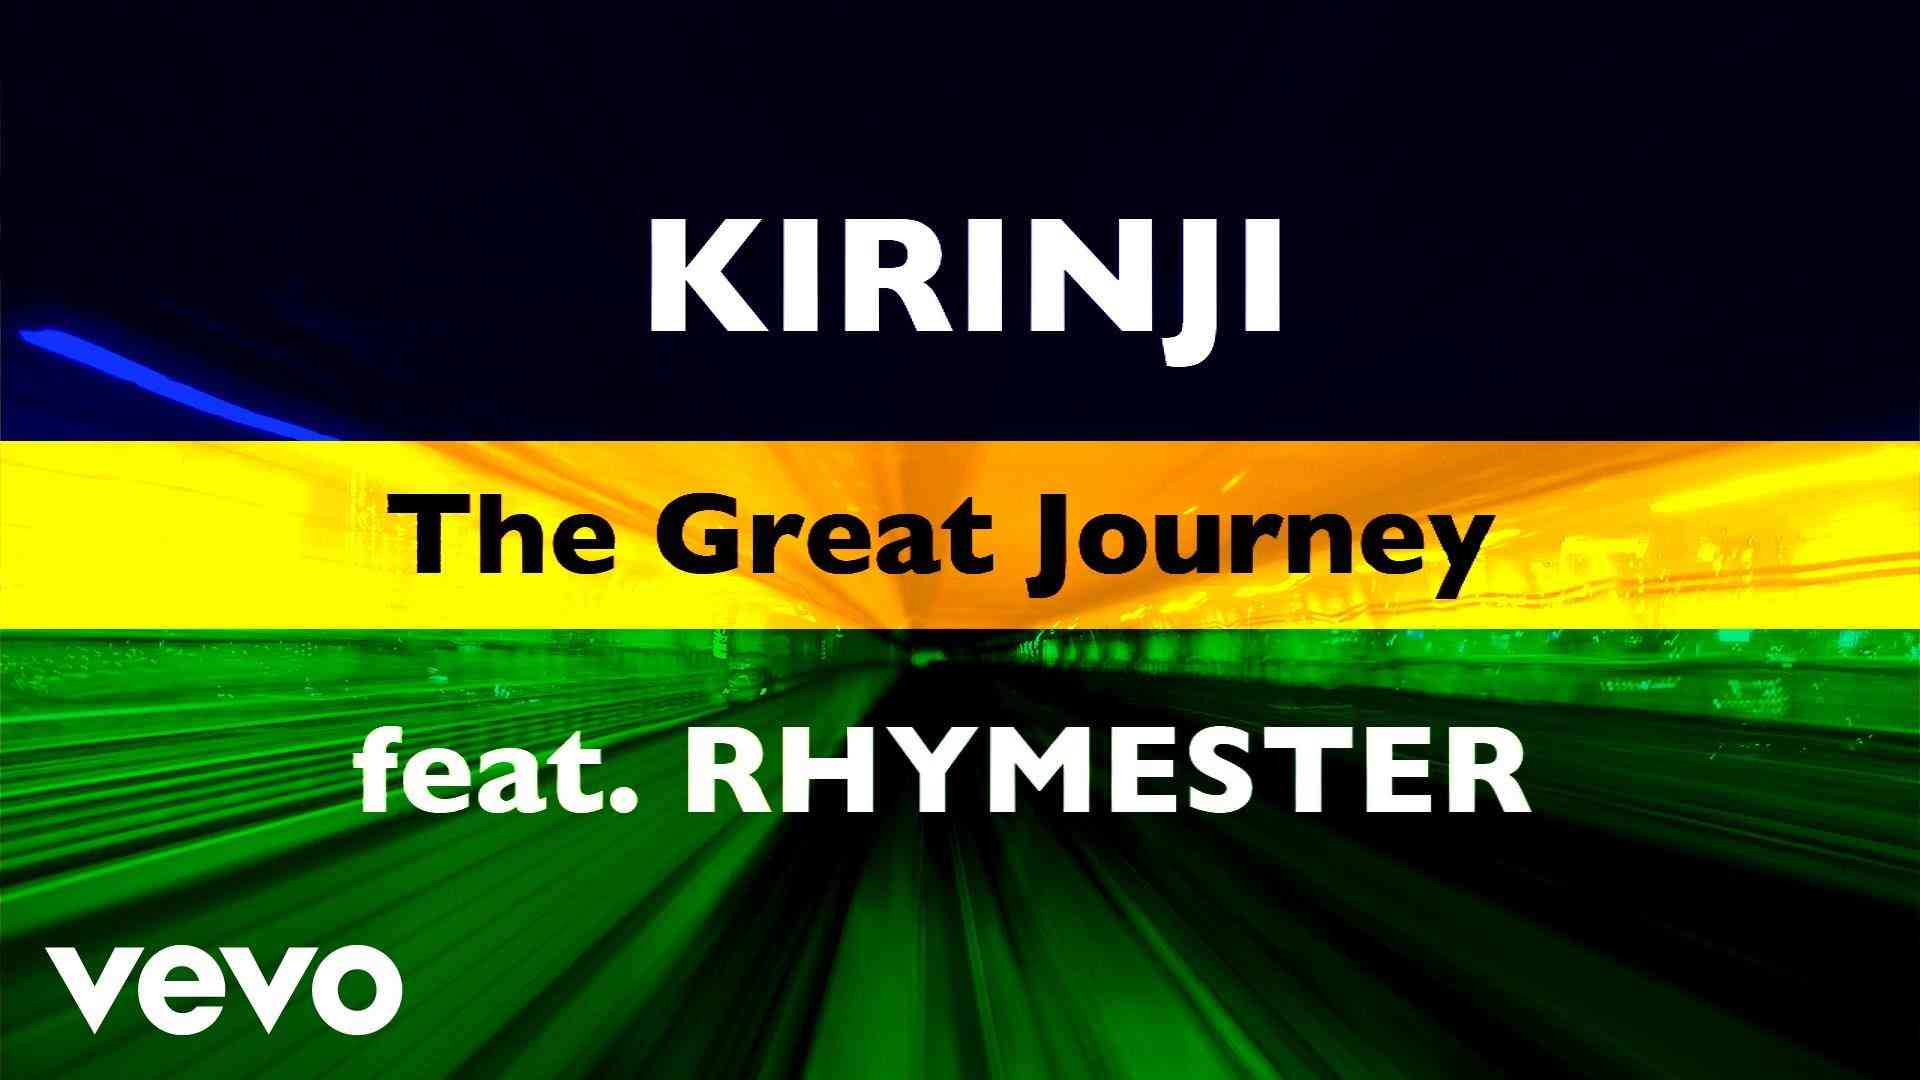 KIRINJI - The Great Journey feat. RHYMESTER - YouTube